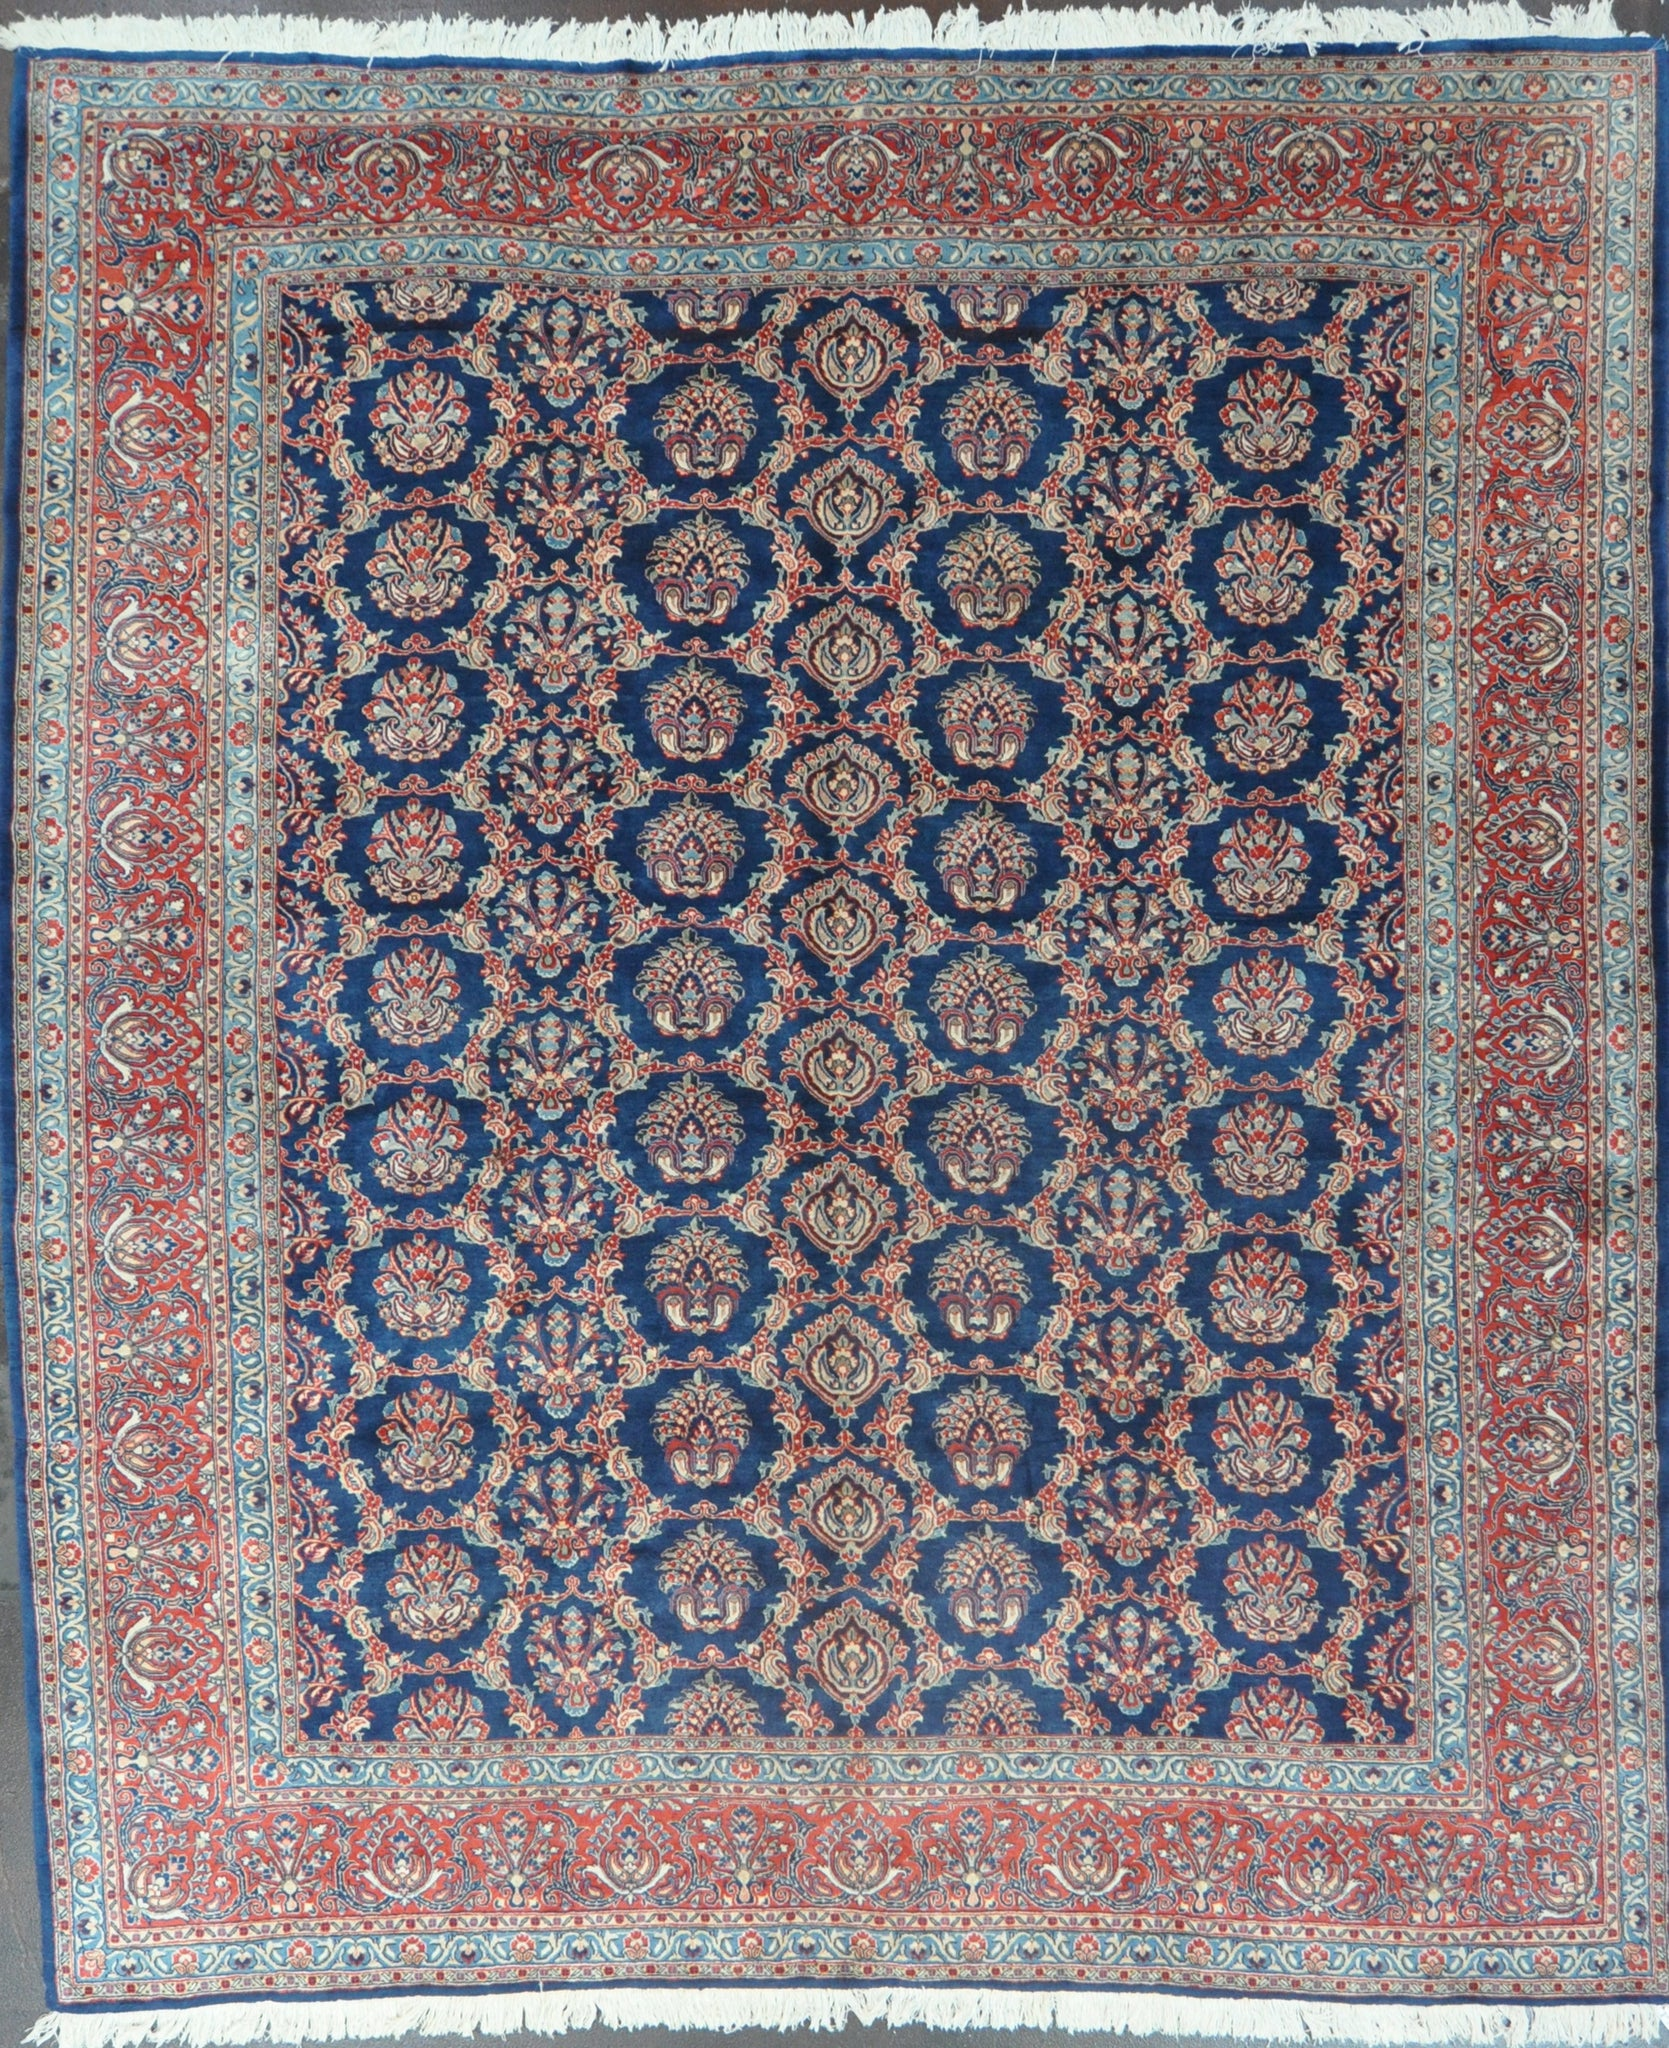 10x11.8 persian sarouk wool #25142